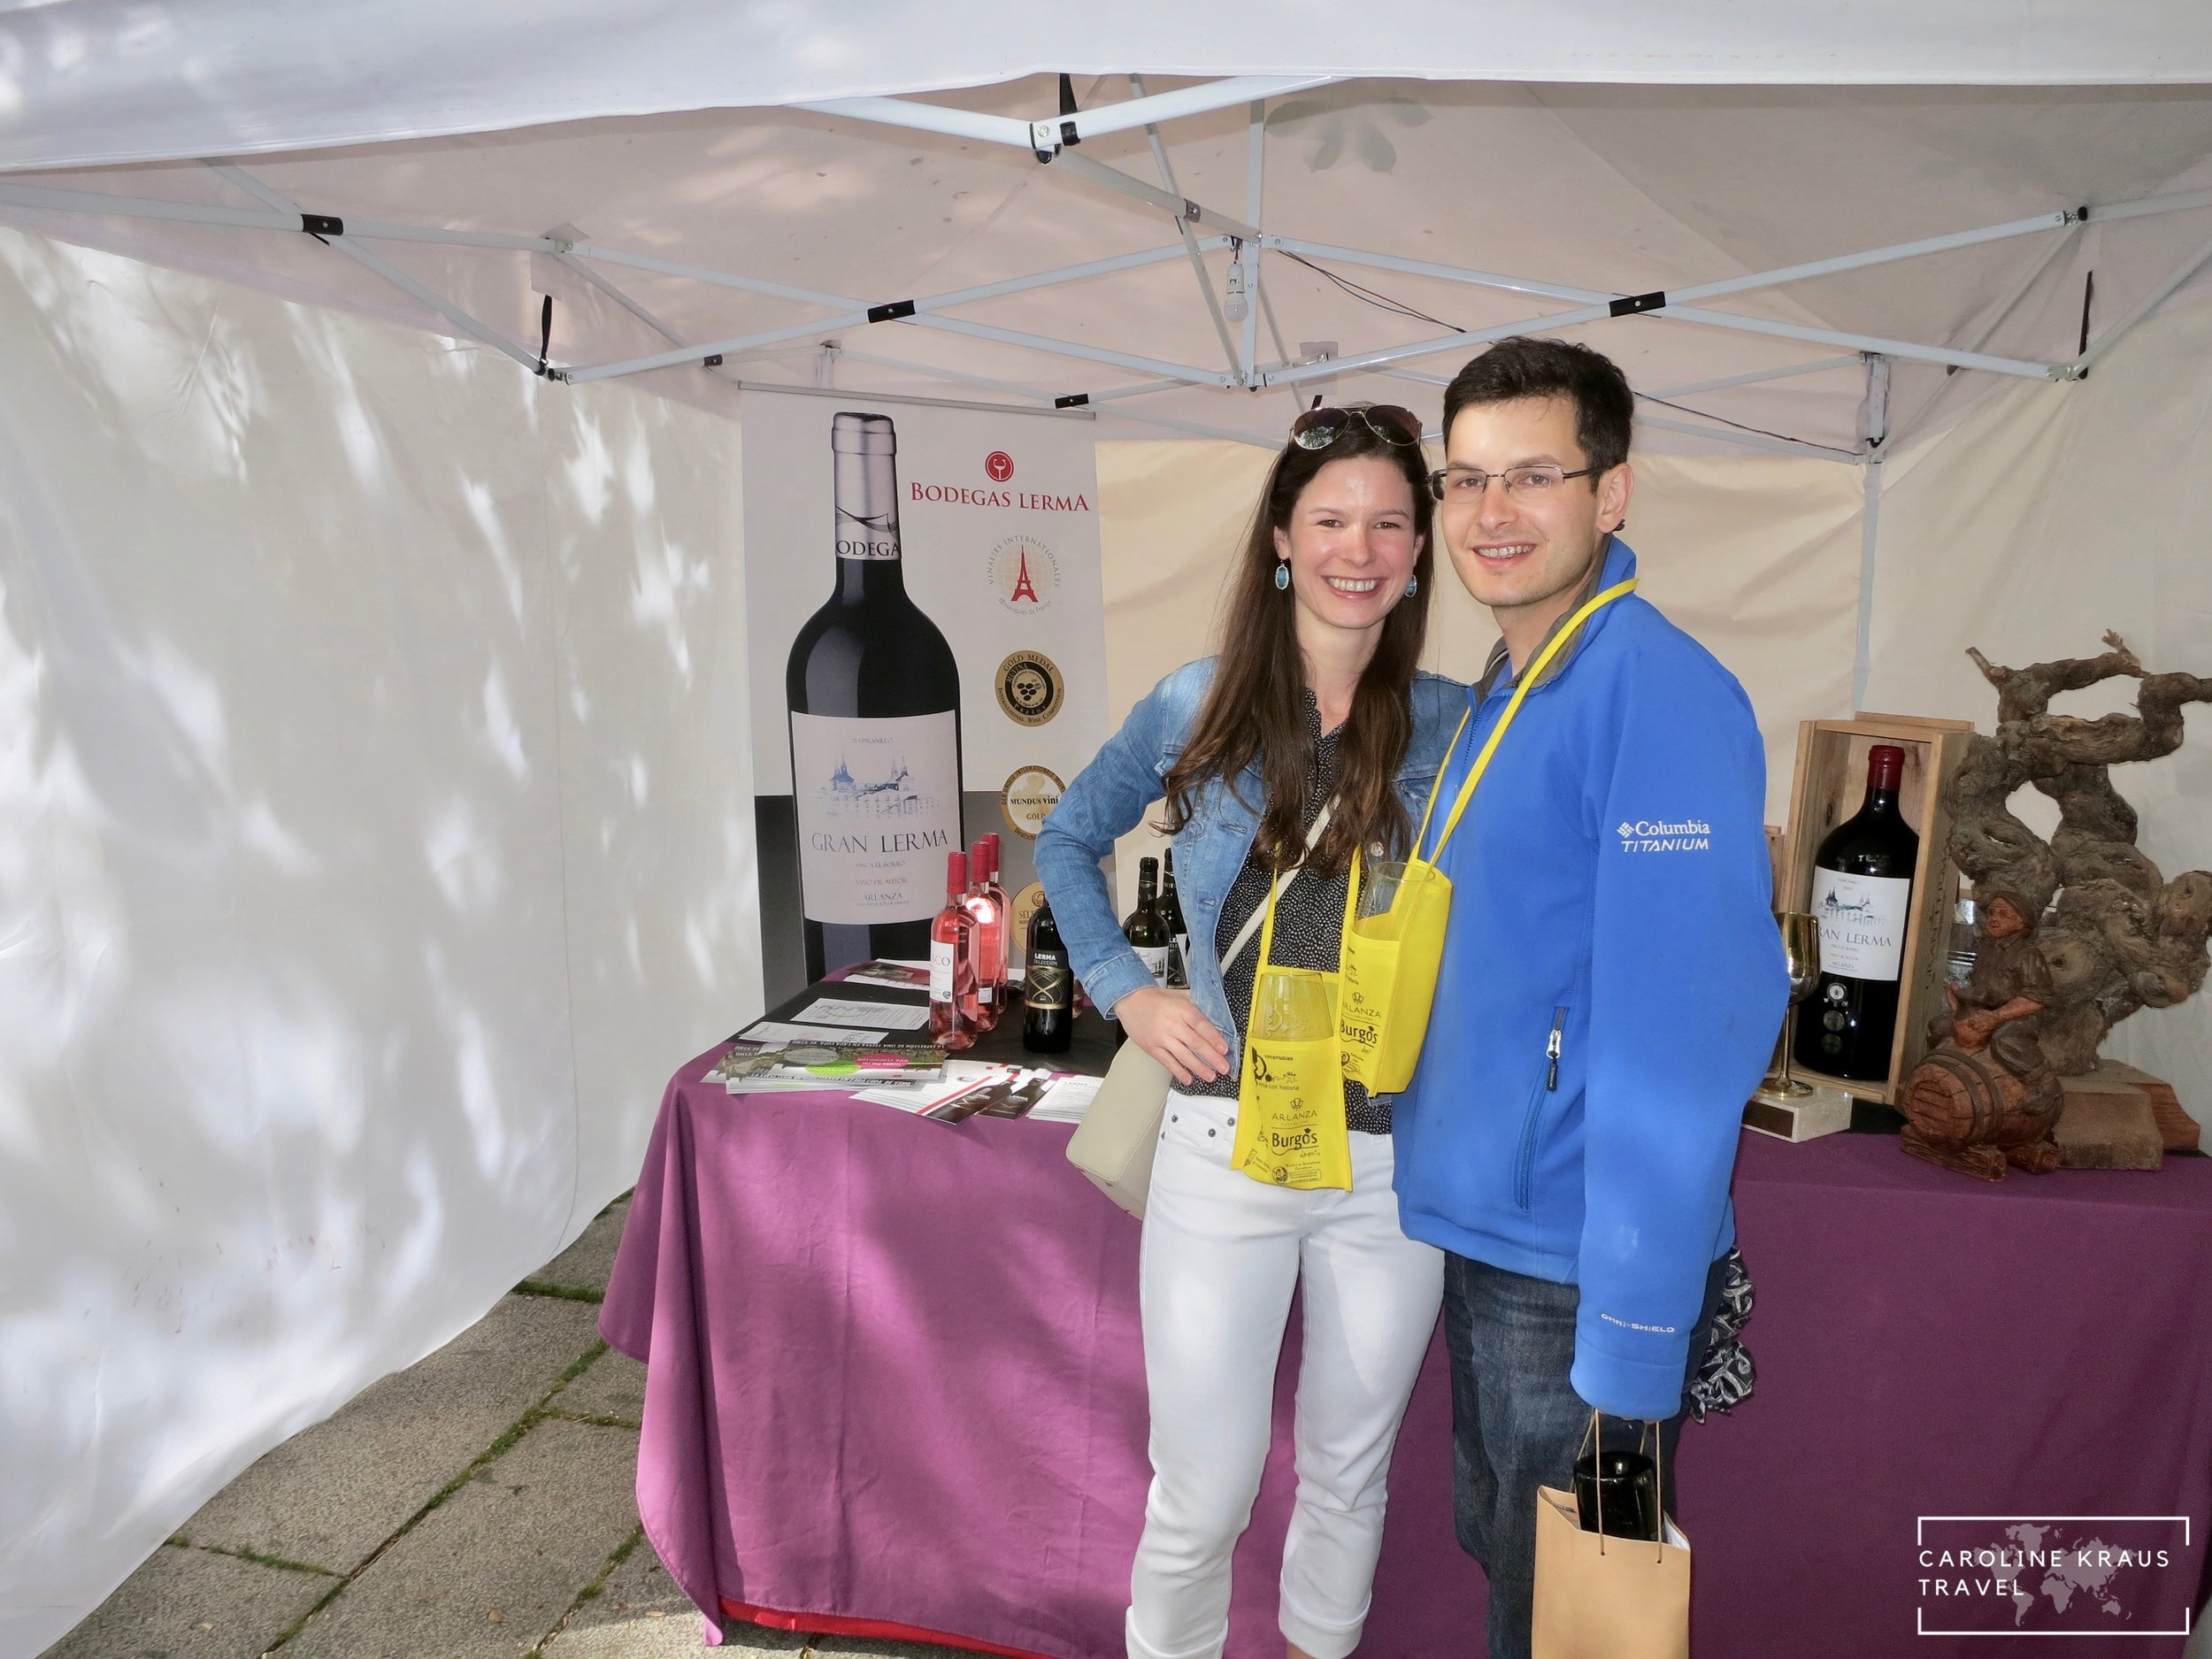 My husband and I at on of the wine festival booths in Covarrubias, Spain